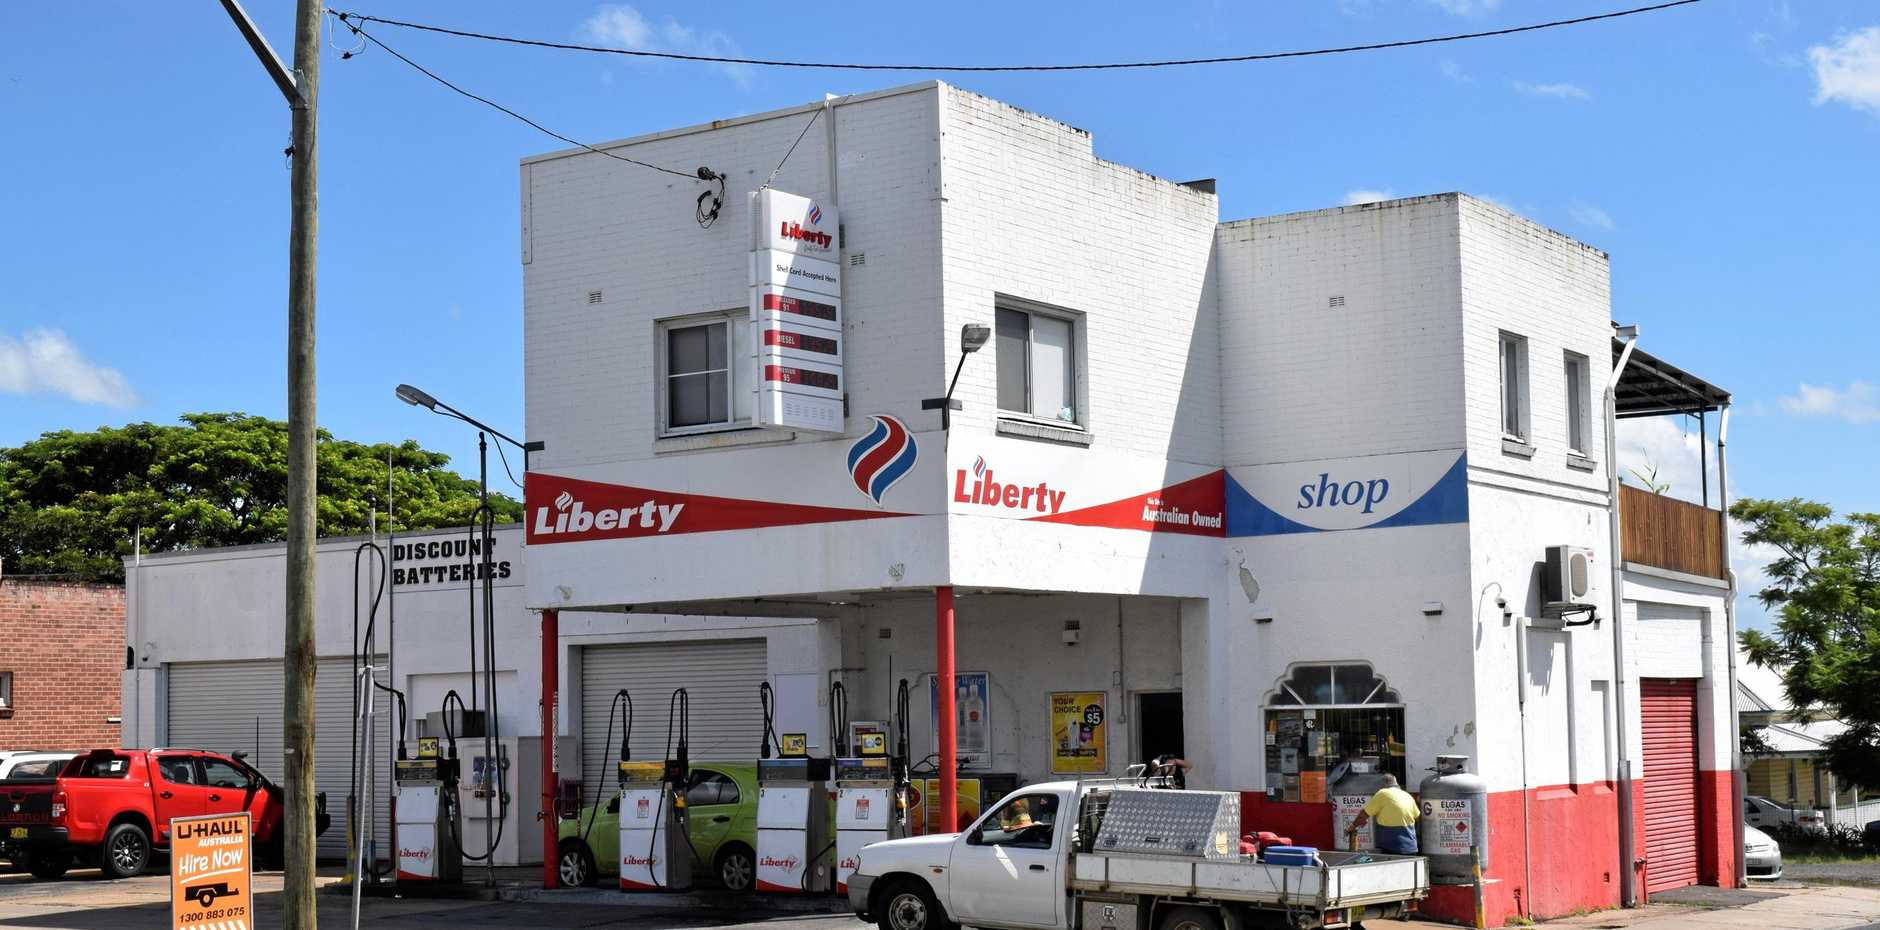 The Liberty service station on Centre St in Casino, which the men targeted in an early-morning robbery.